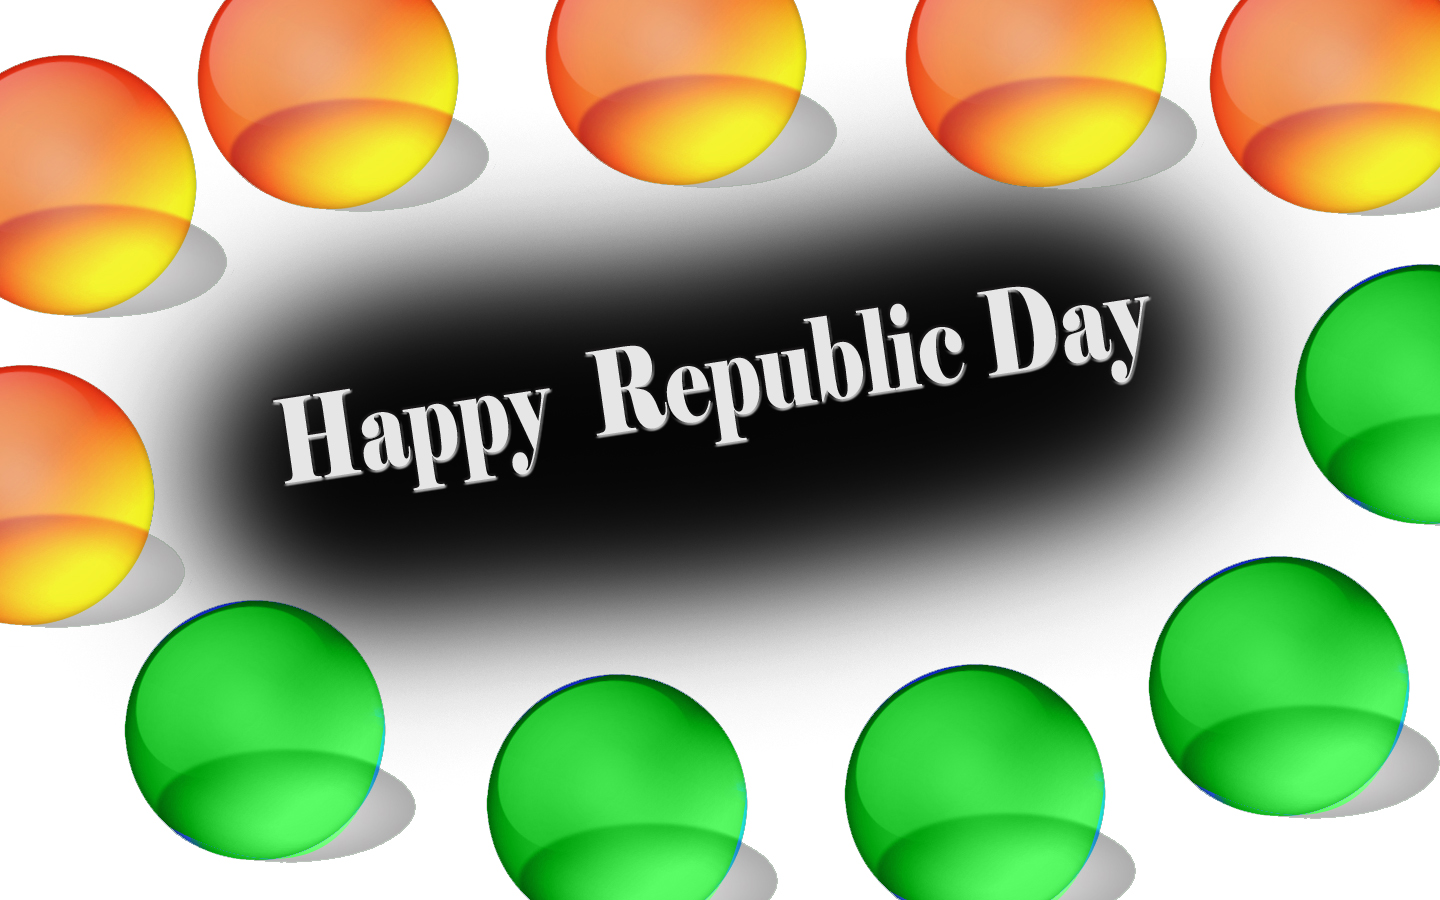 http://3.bp.blogspot.com/-HVwjCuSbNV4/UP4inD_moZI/AAAAAAAAIRg/Cslifefvh1w/s1600/happy+republic+day+high+resoutlation+hd+wallpaper+free.jpg